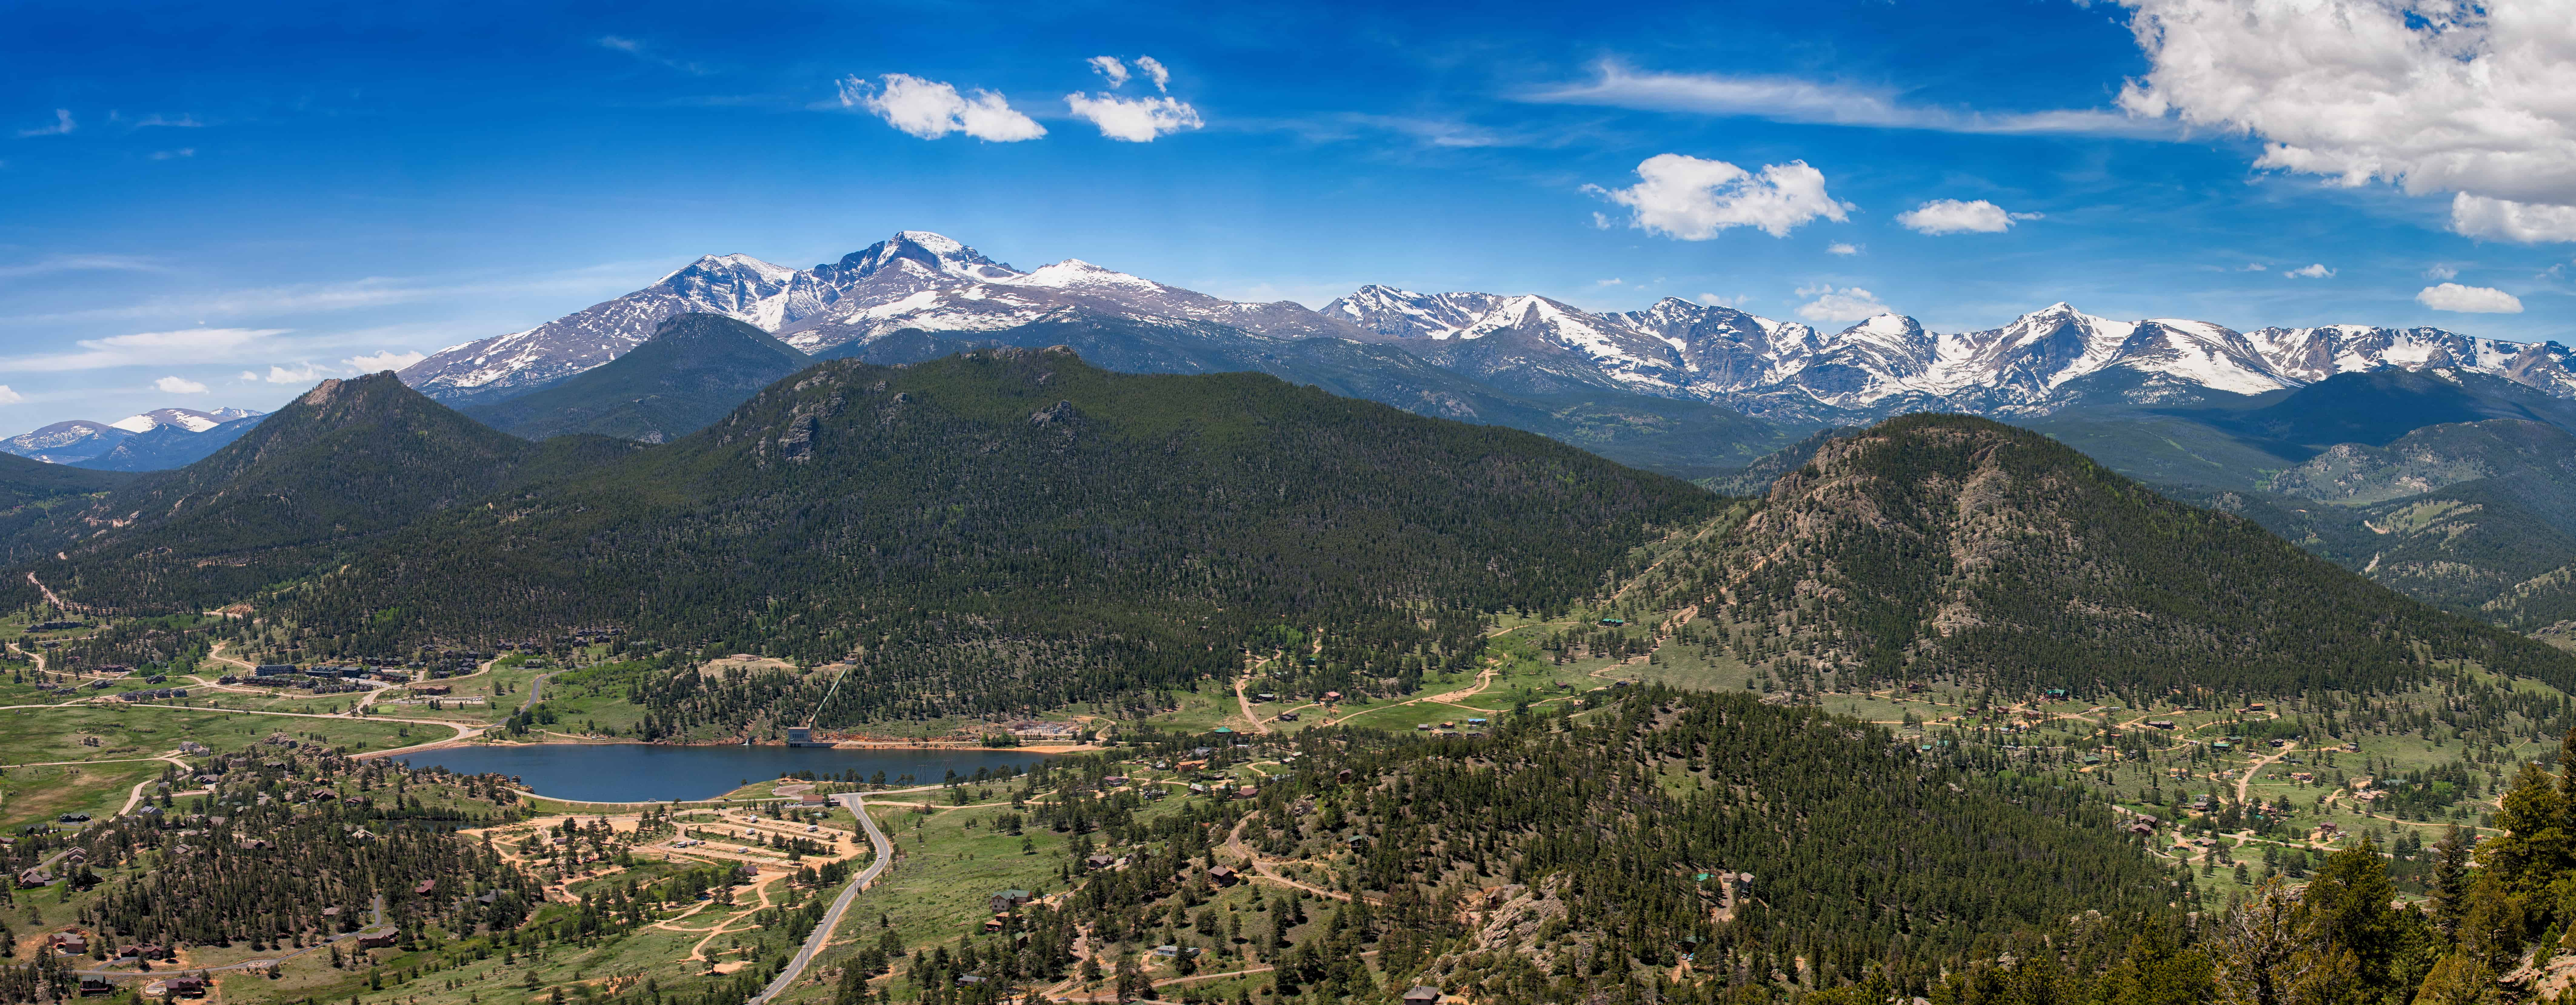 Panoramic view of Rocky mountains from Prospect Mountain,